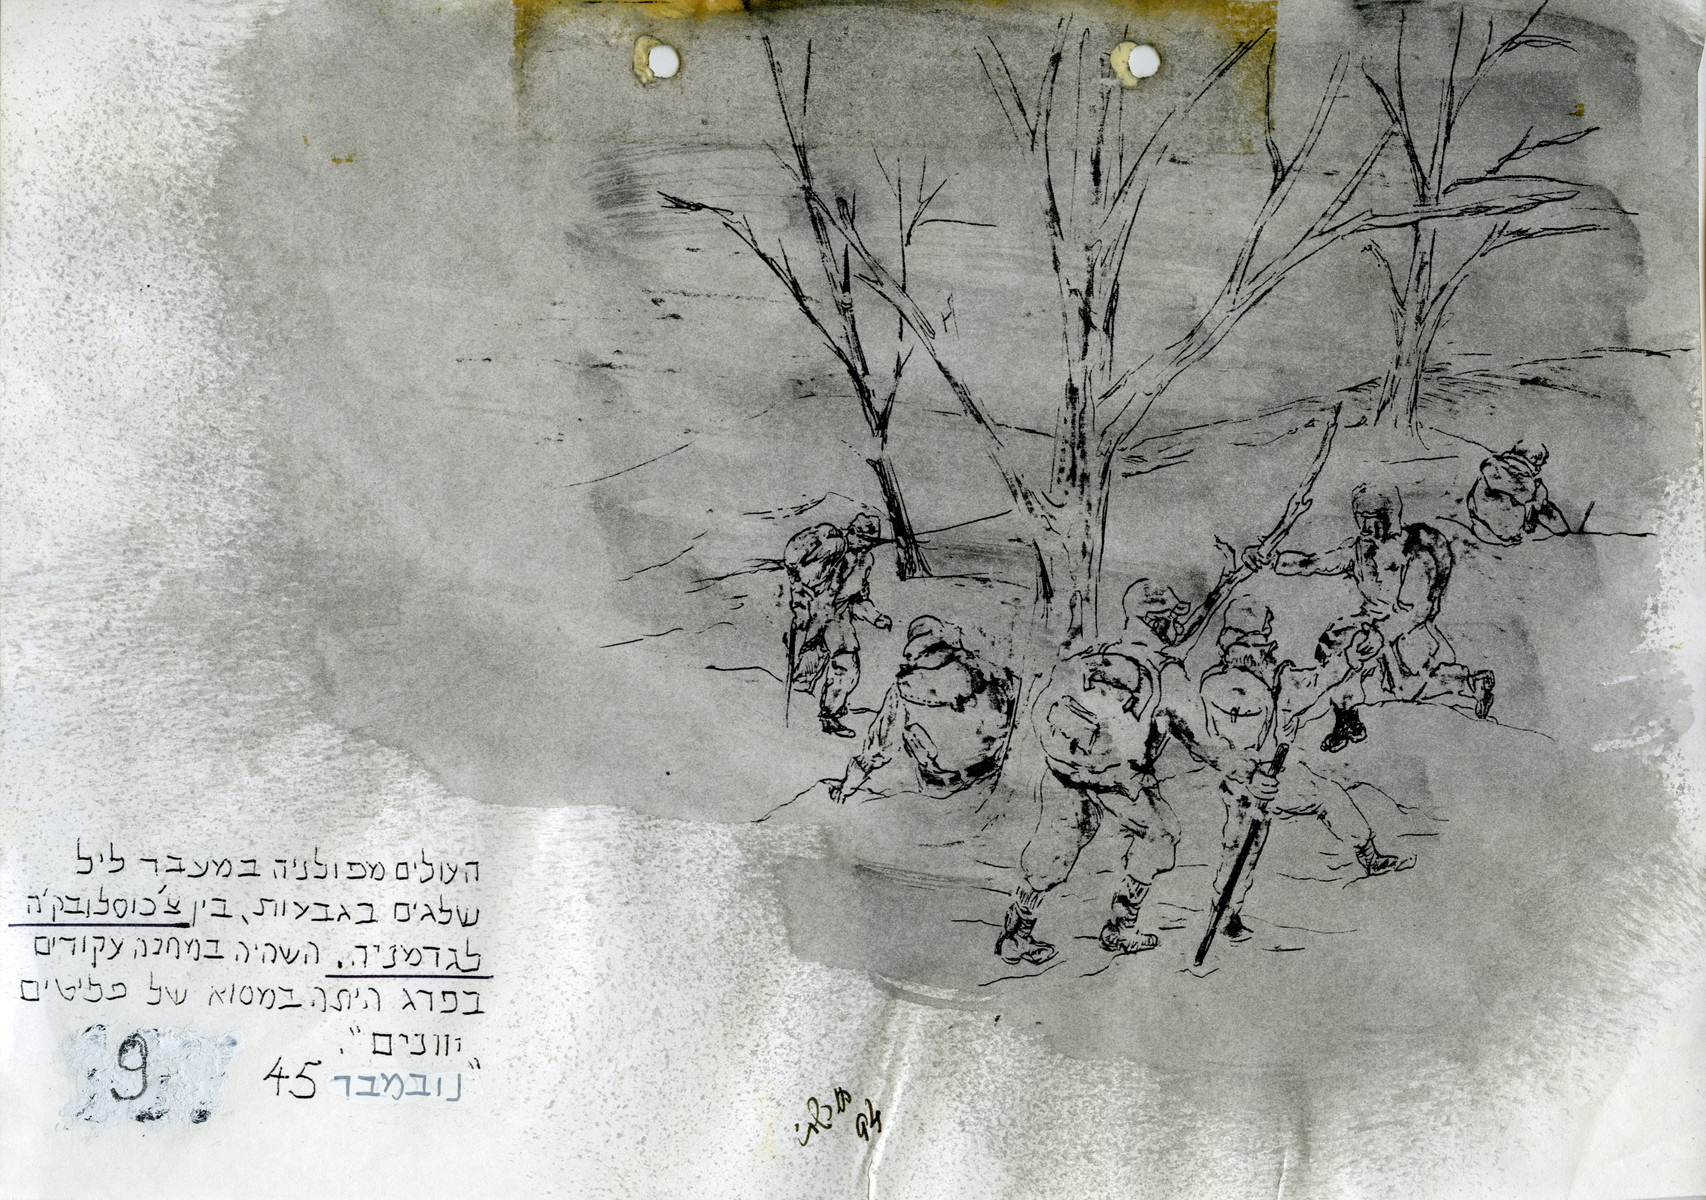 Page of a pictoral memoir drawn by the donor documenting his experiences after the Holocaust.  The drawing shows Jewish refugees walking from Czechoslovakia to Germany in the snow.